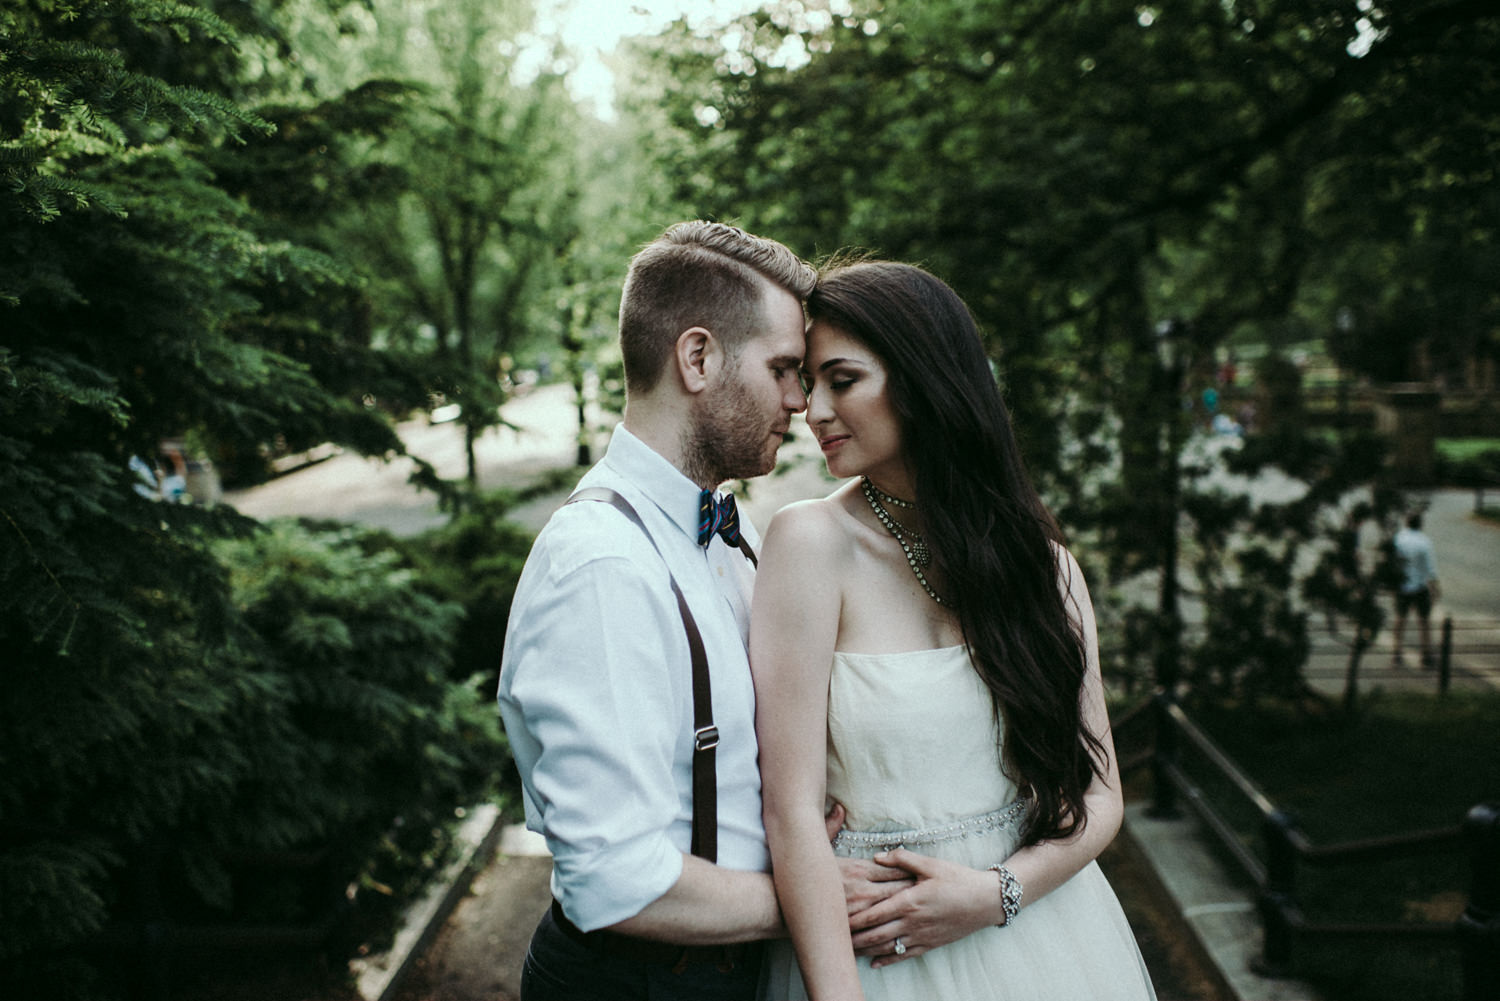 new-york-elopement-engagement-pictures-giancarlo-photography-51.jpg